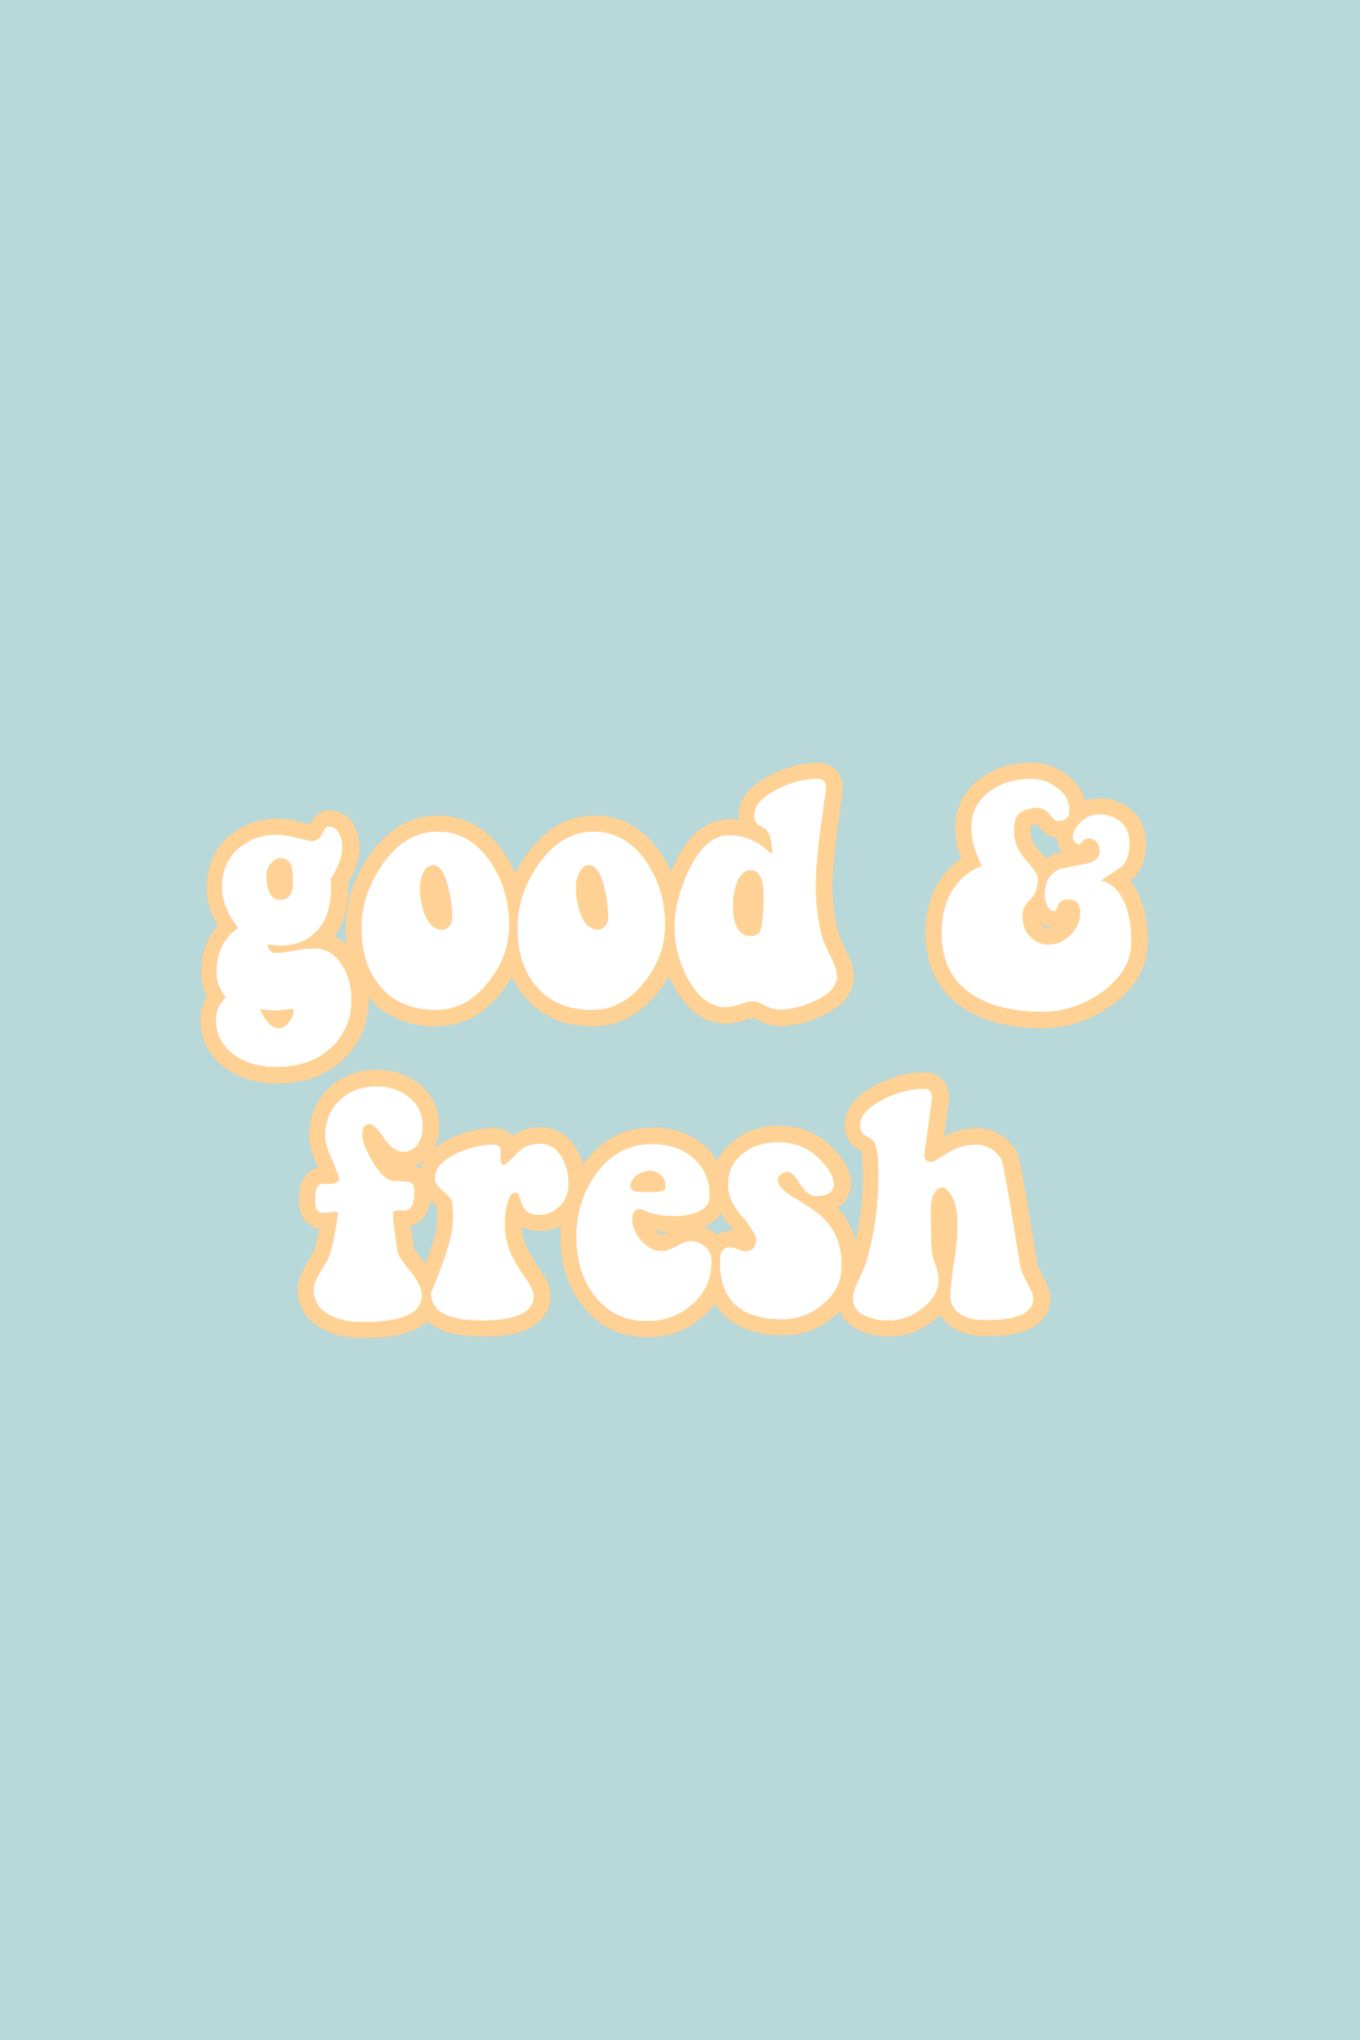 Good And Fresh Quote Words Teal Yellow Aesthetic Iphone Wallpaper